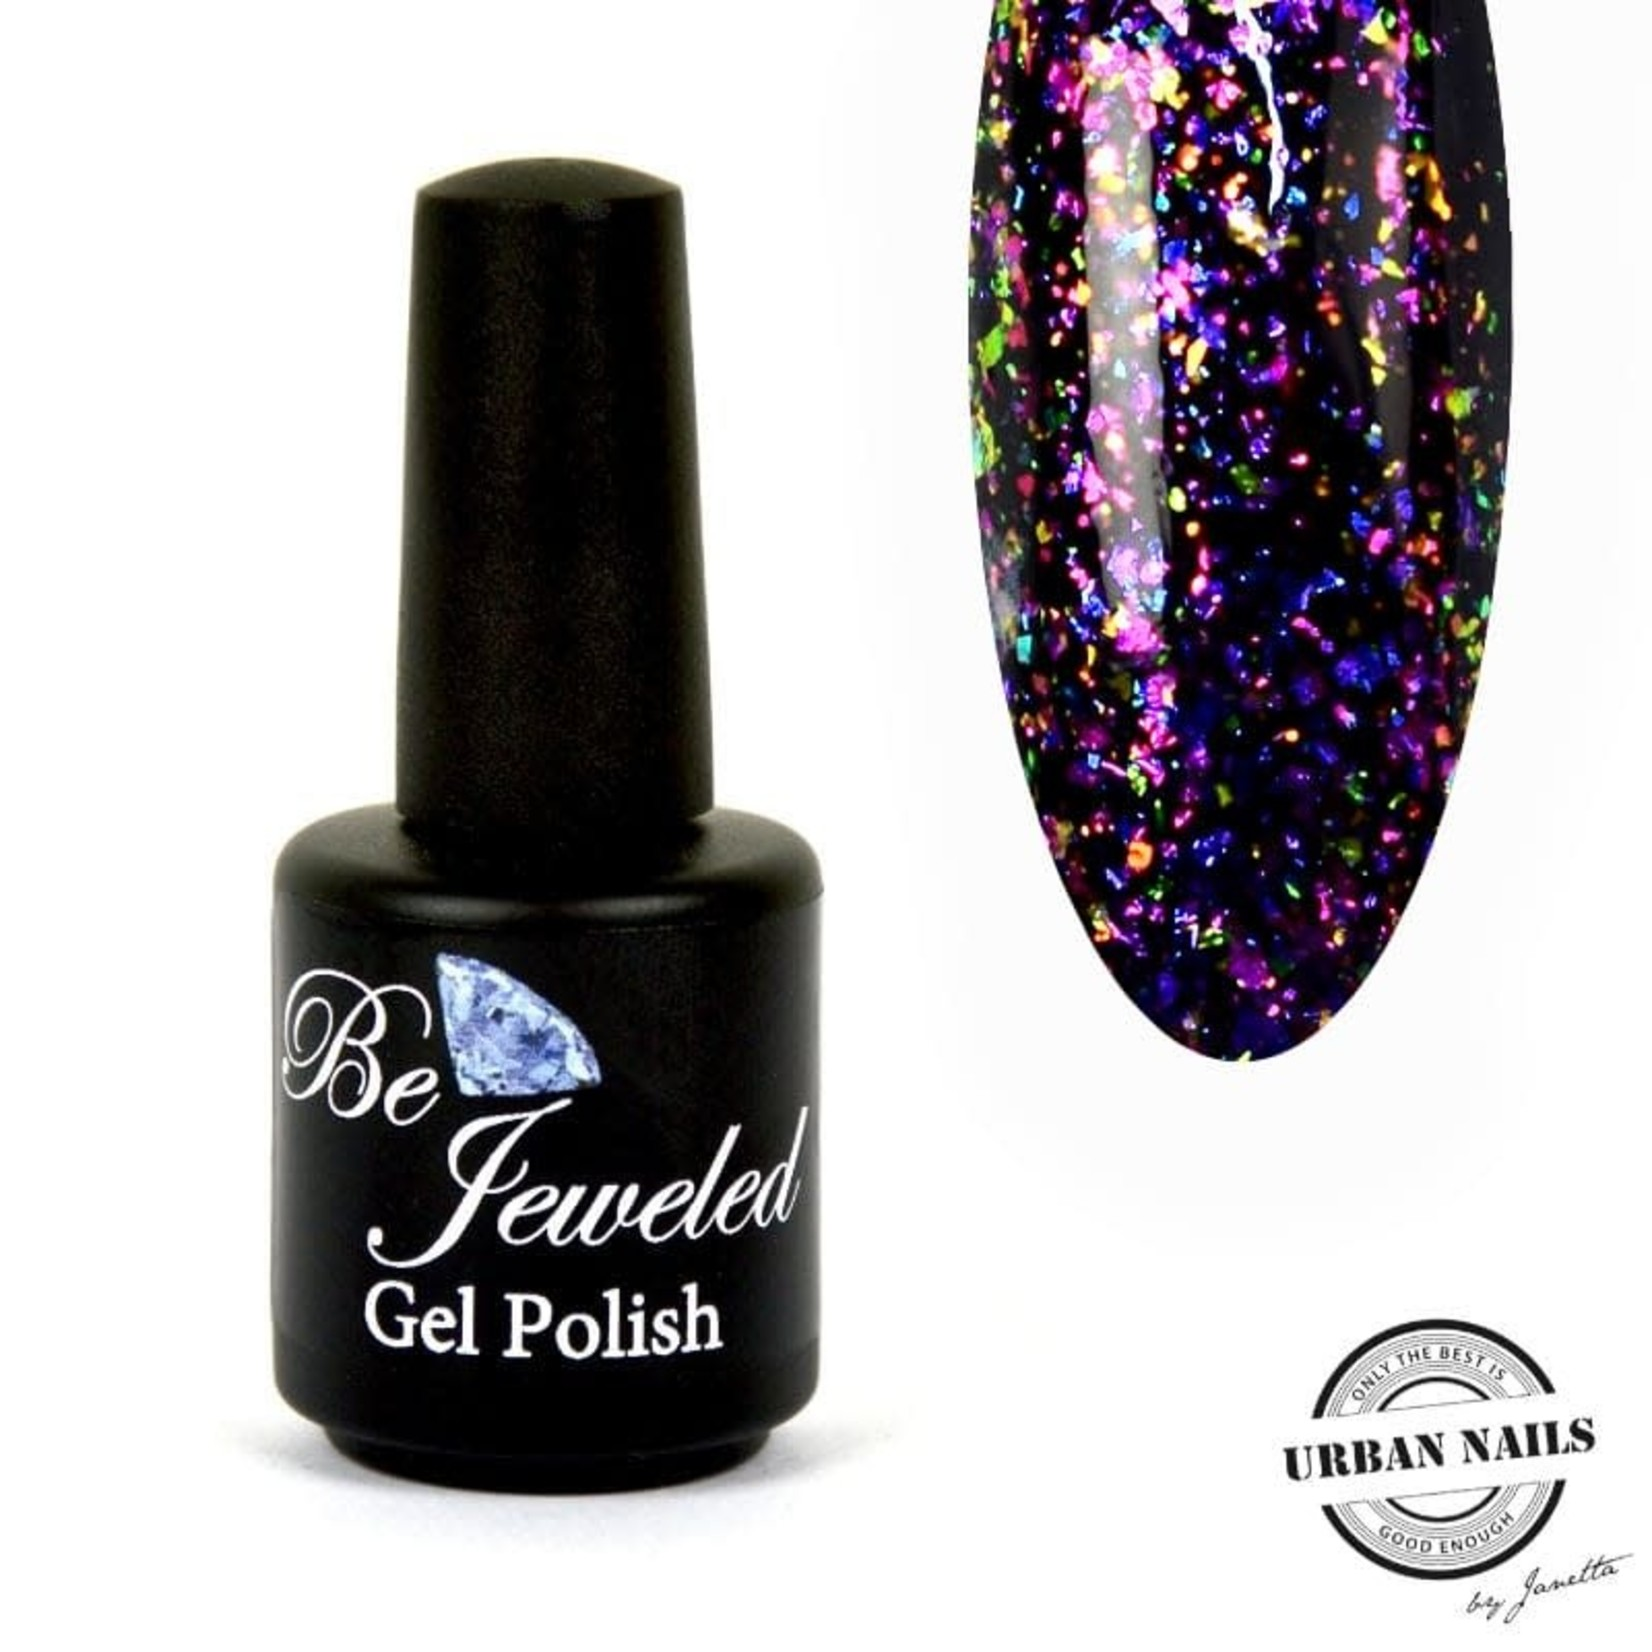 Urban Nails Glitter top gel 3